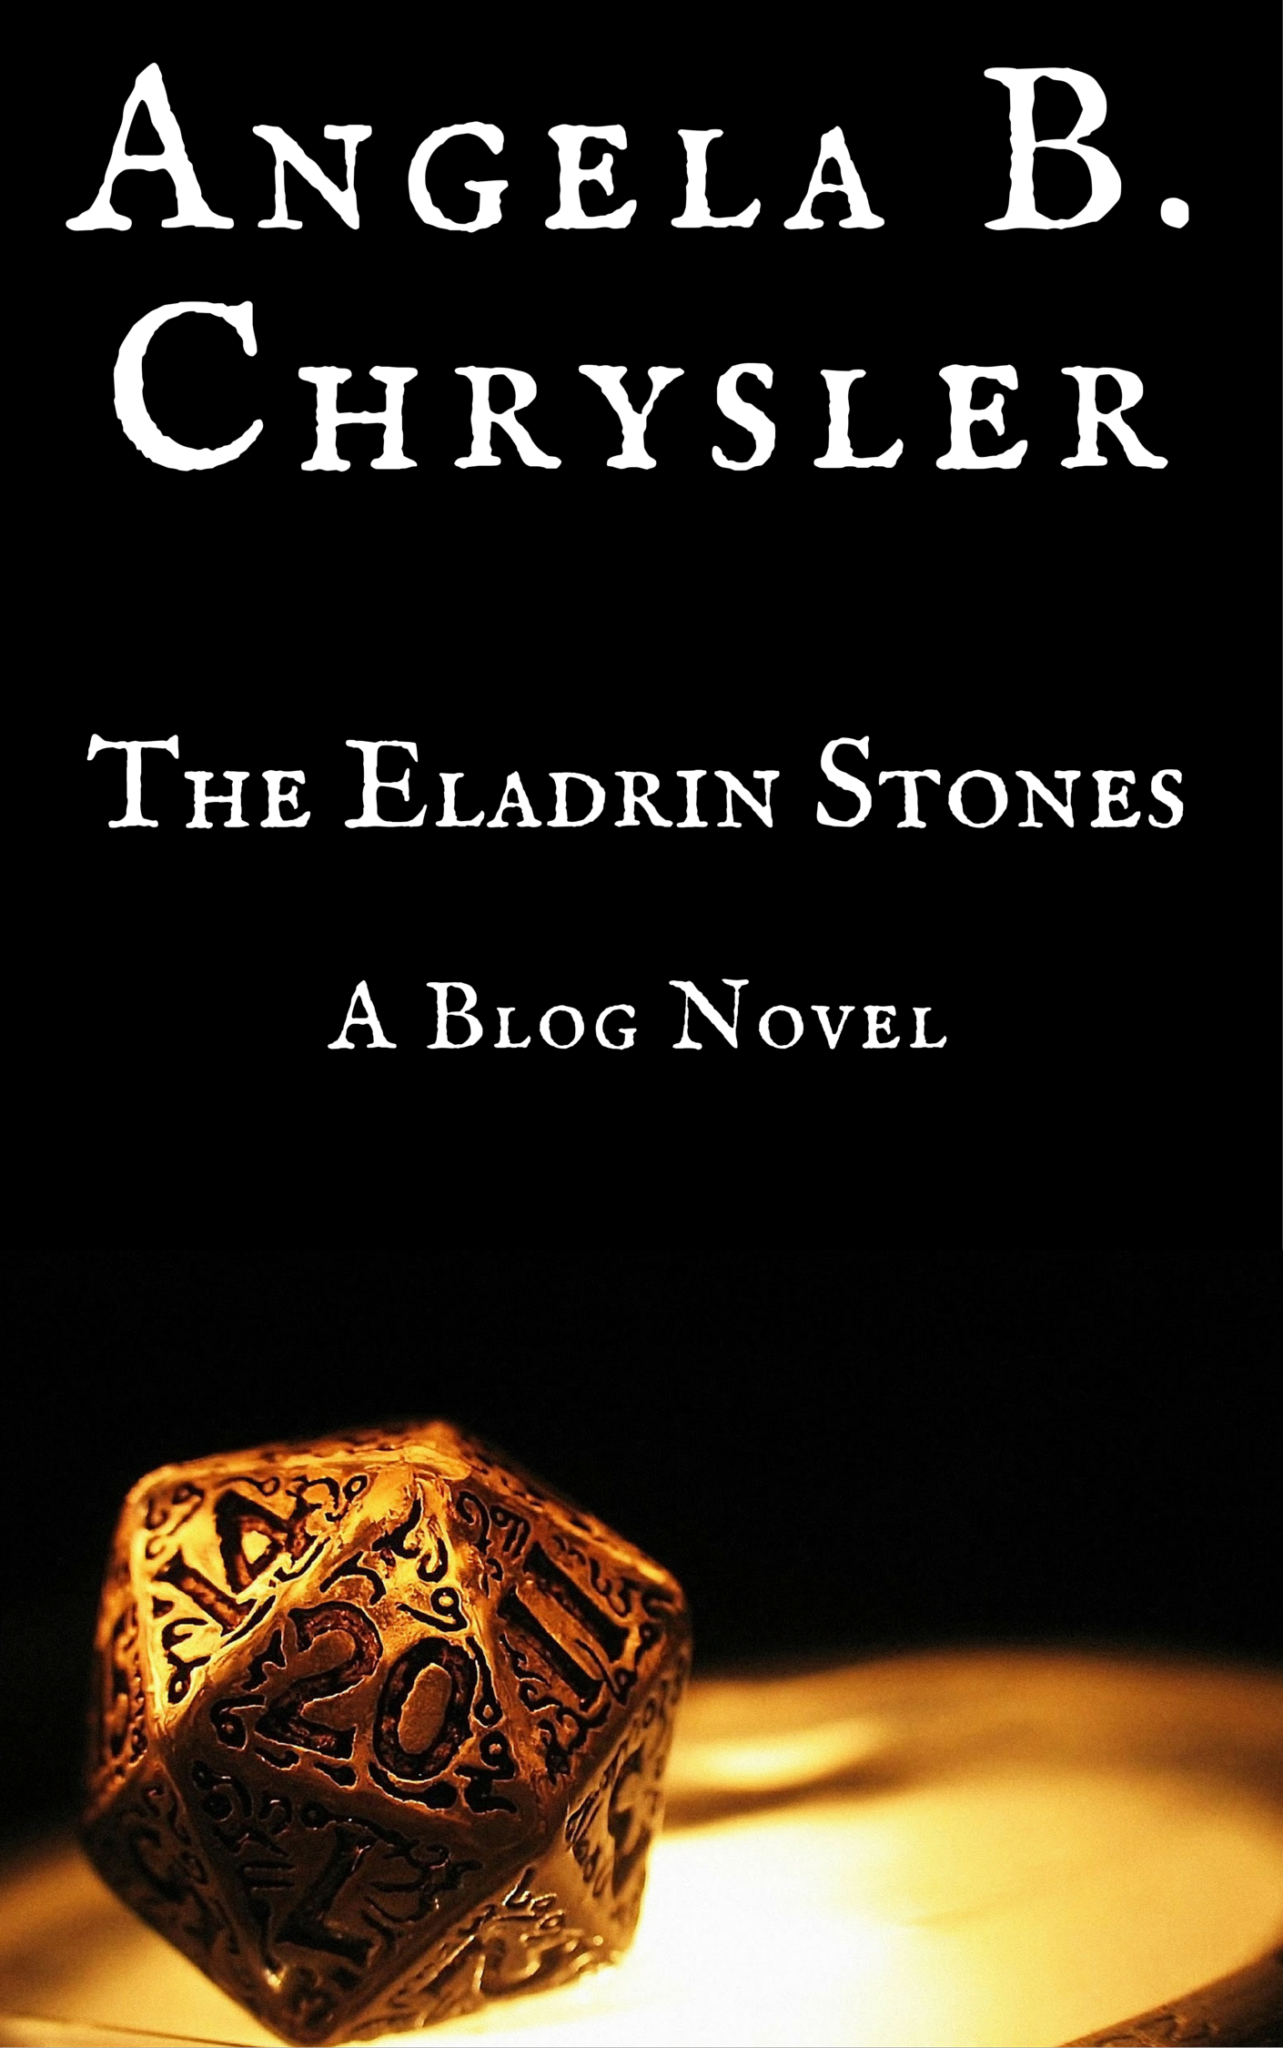 The Eladrin Stones